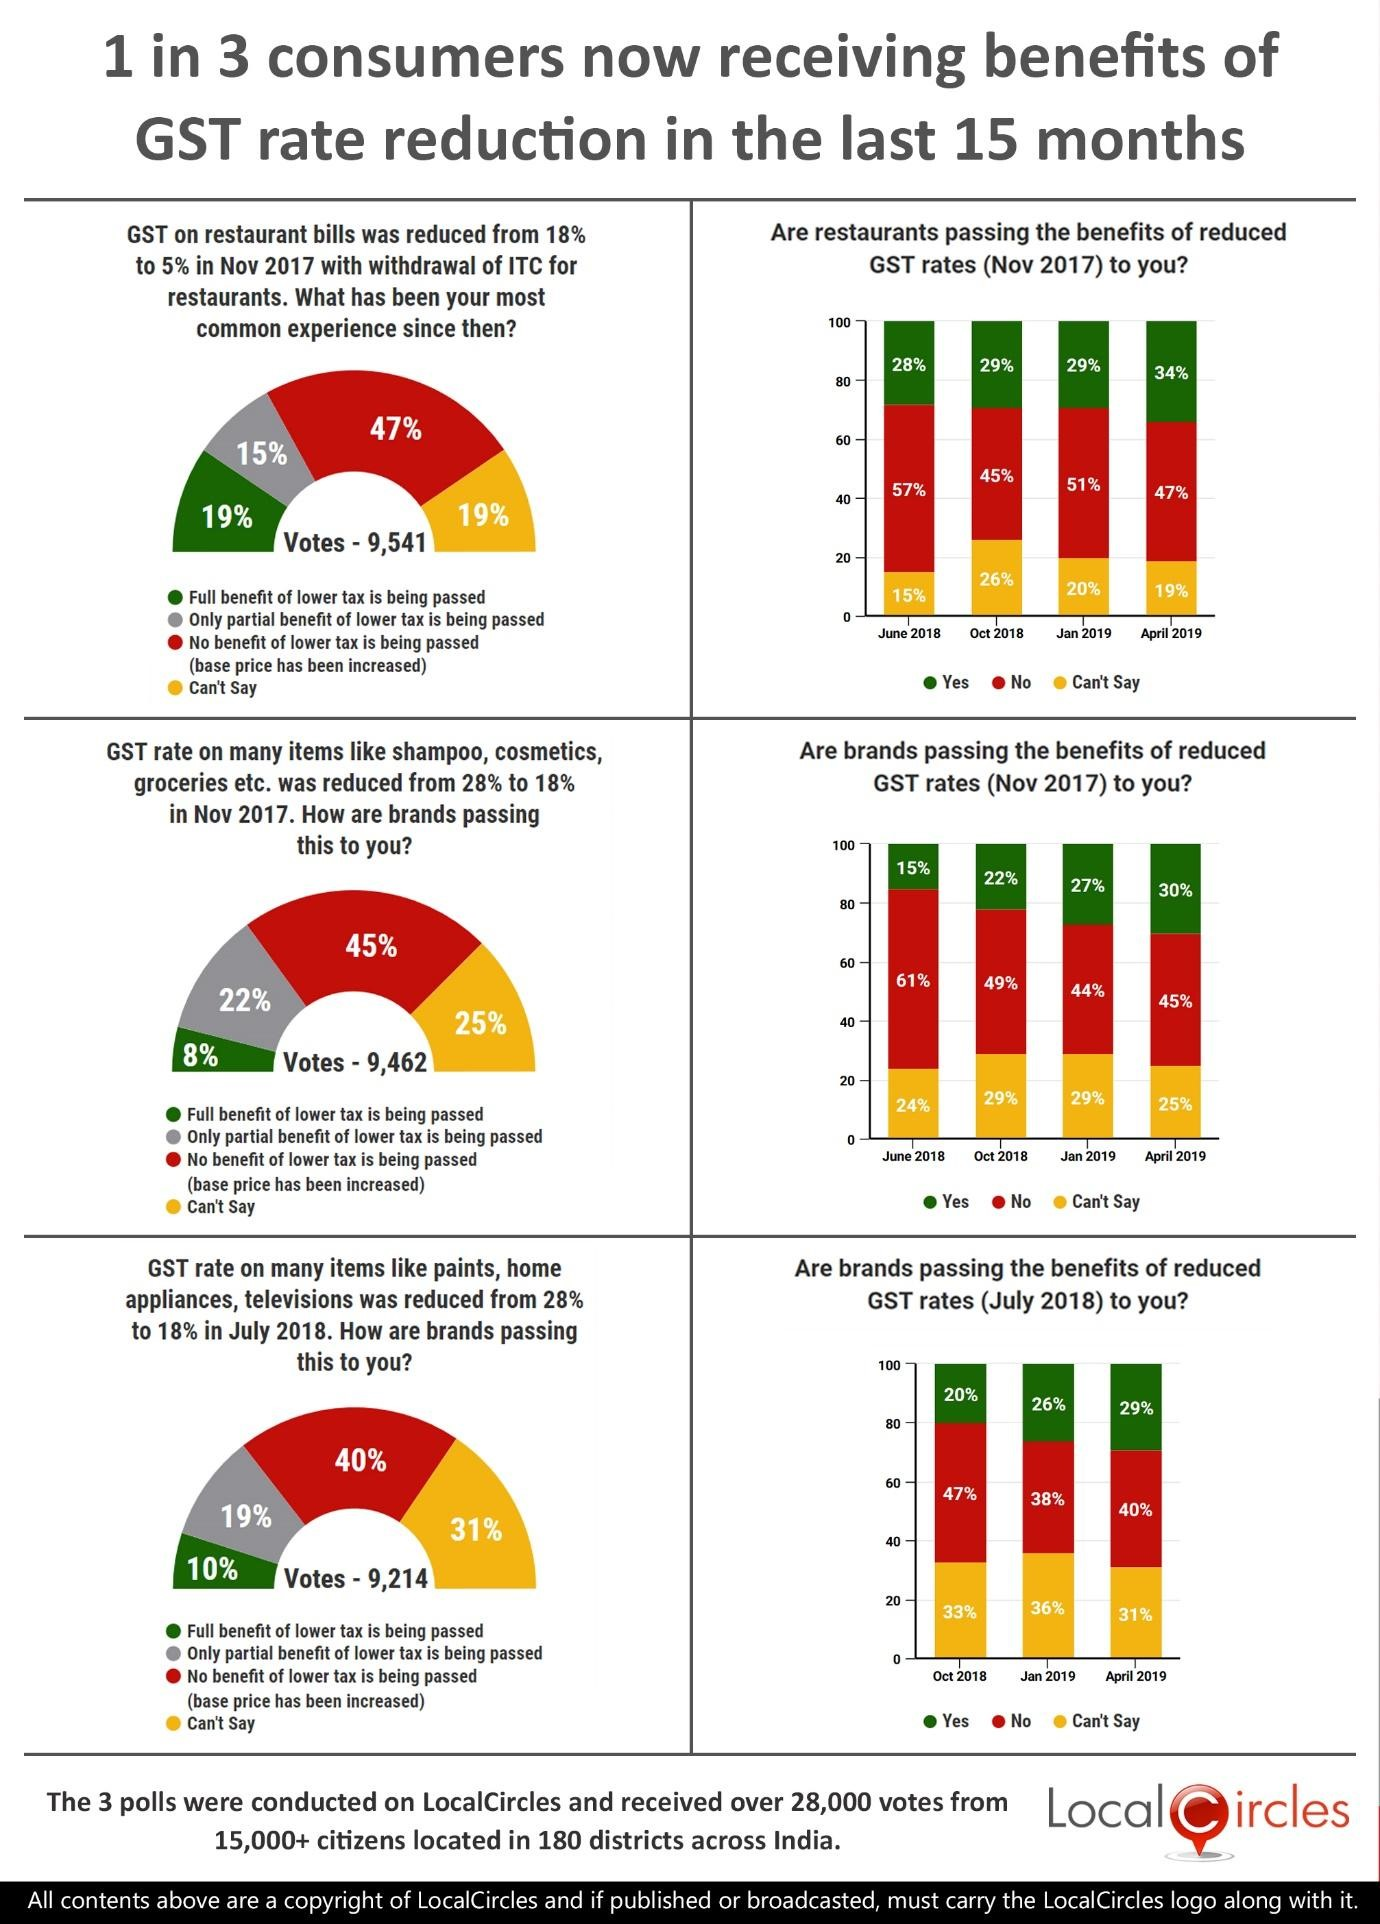 Poll Summary graphics showing that 1 in 3 consumers now receiving benefits of GST rate reduction in the last 15 months